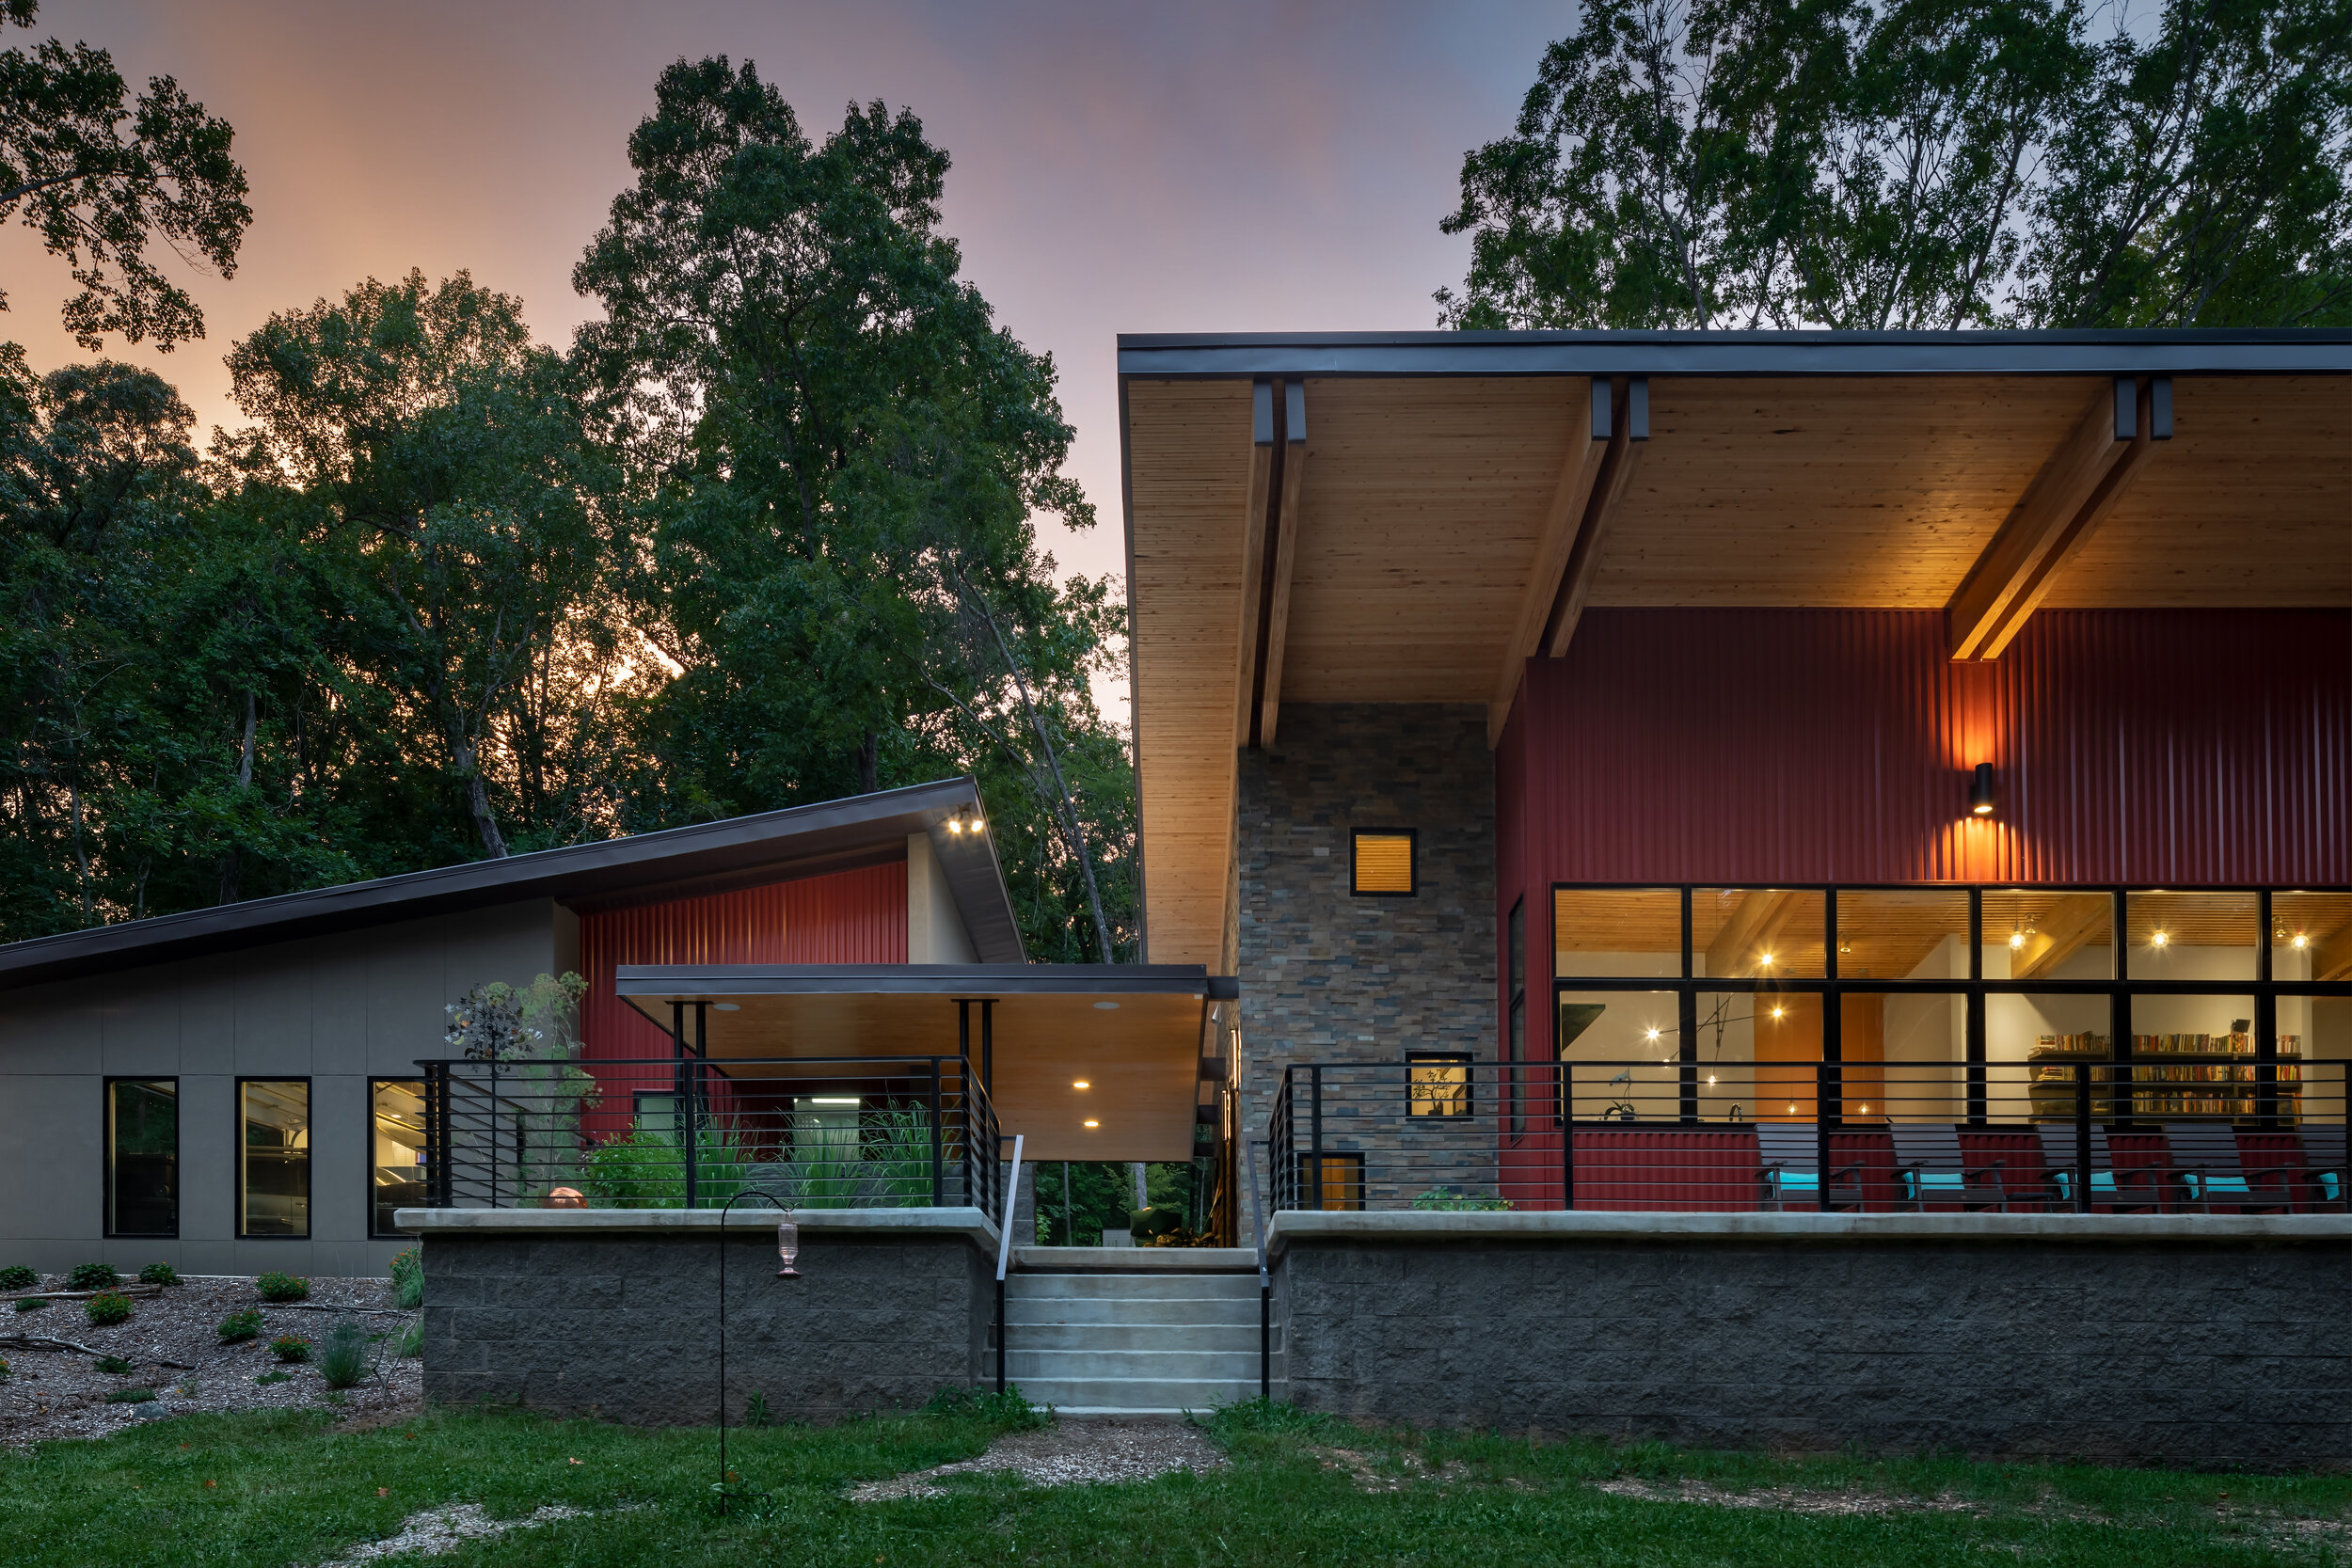 The exterior of this unique, contemporary home is highlighted by the red metal siding which pops against the more traditional stucco and stone.